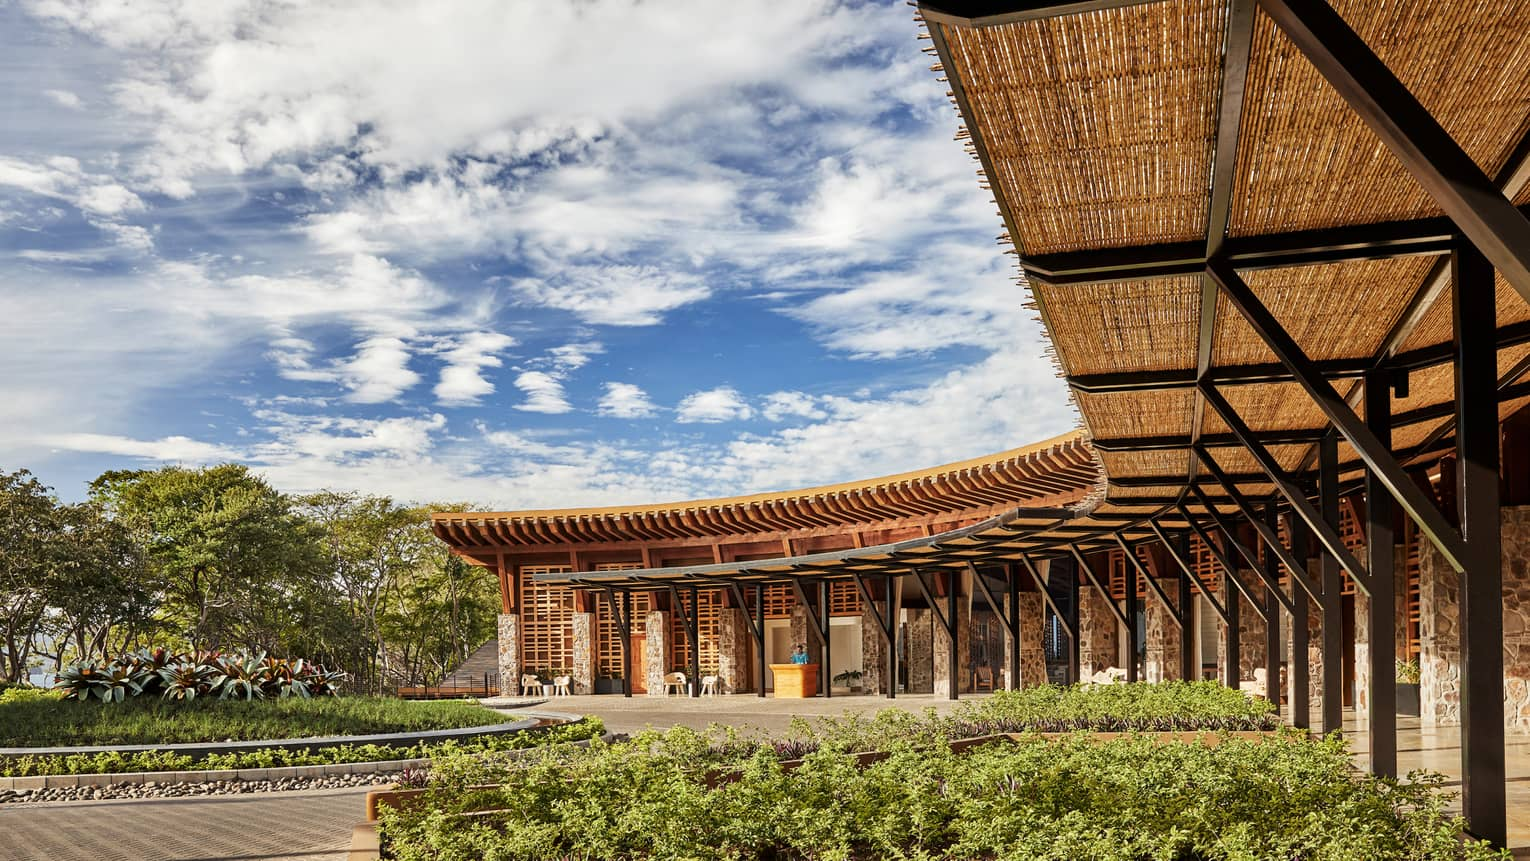 Curved rattan roof, pillars over Four Seasons Hotel Costa Rica at Peninsula Papagayo front entrance